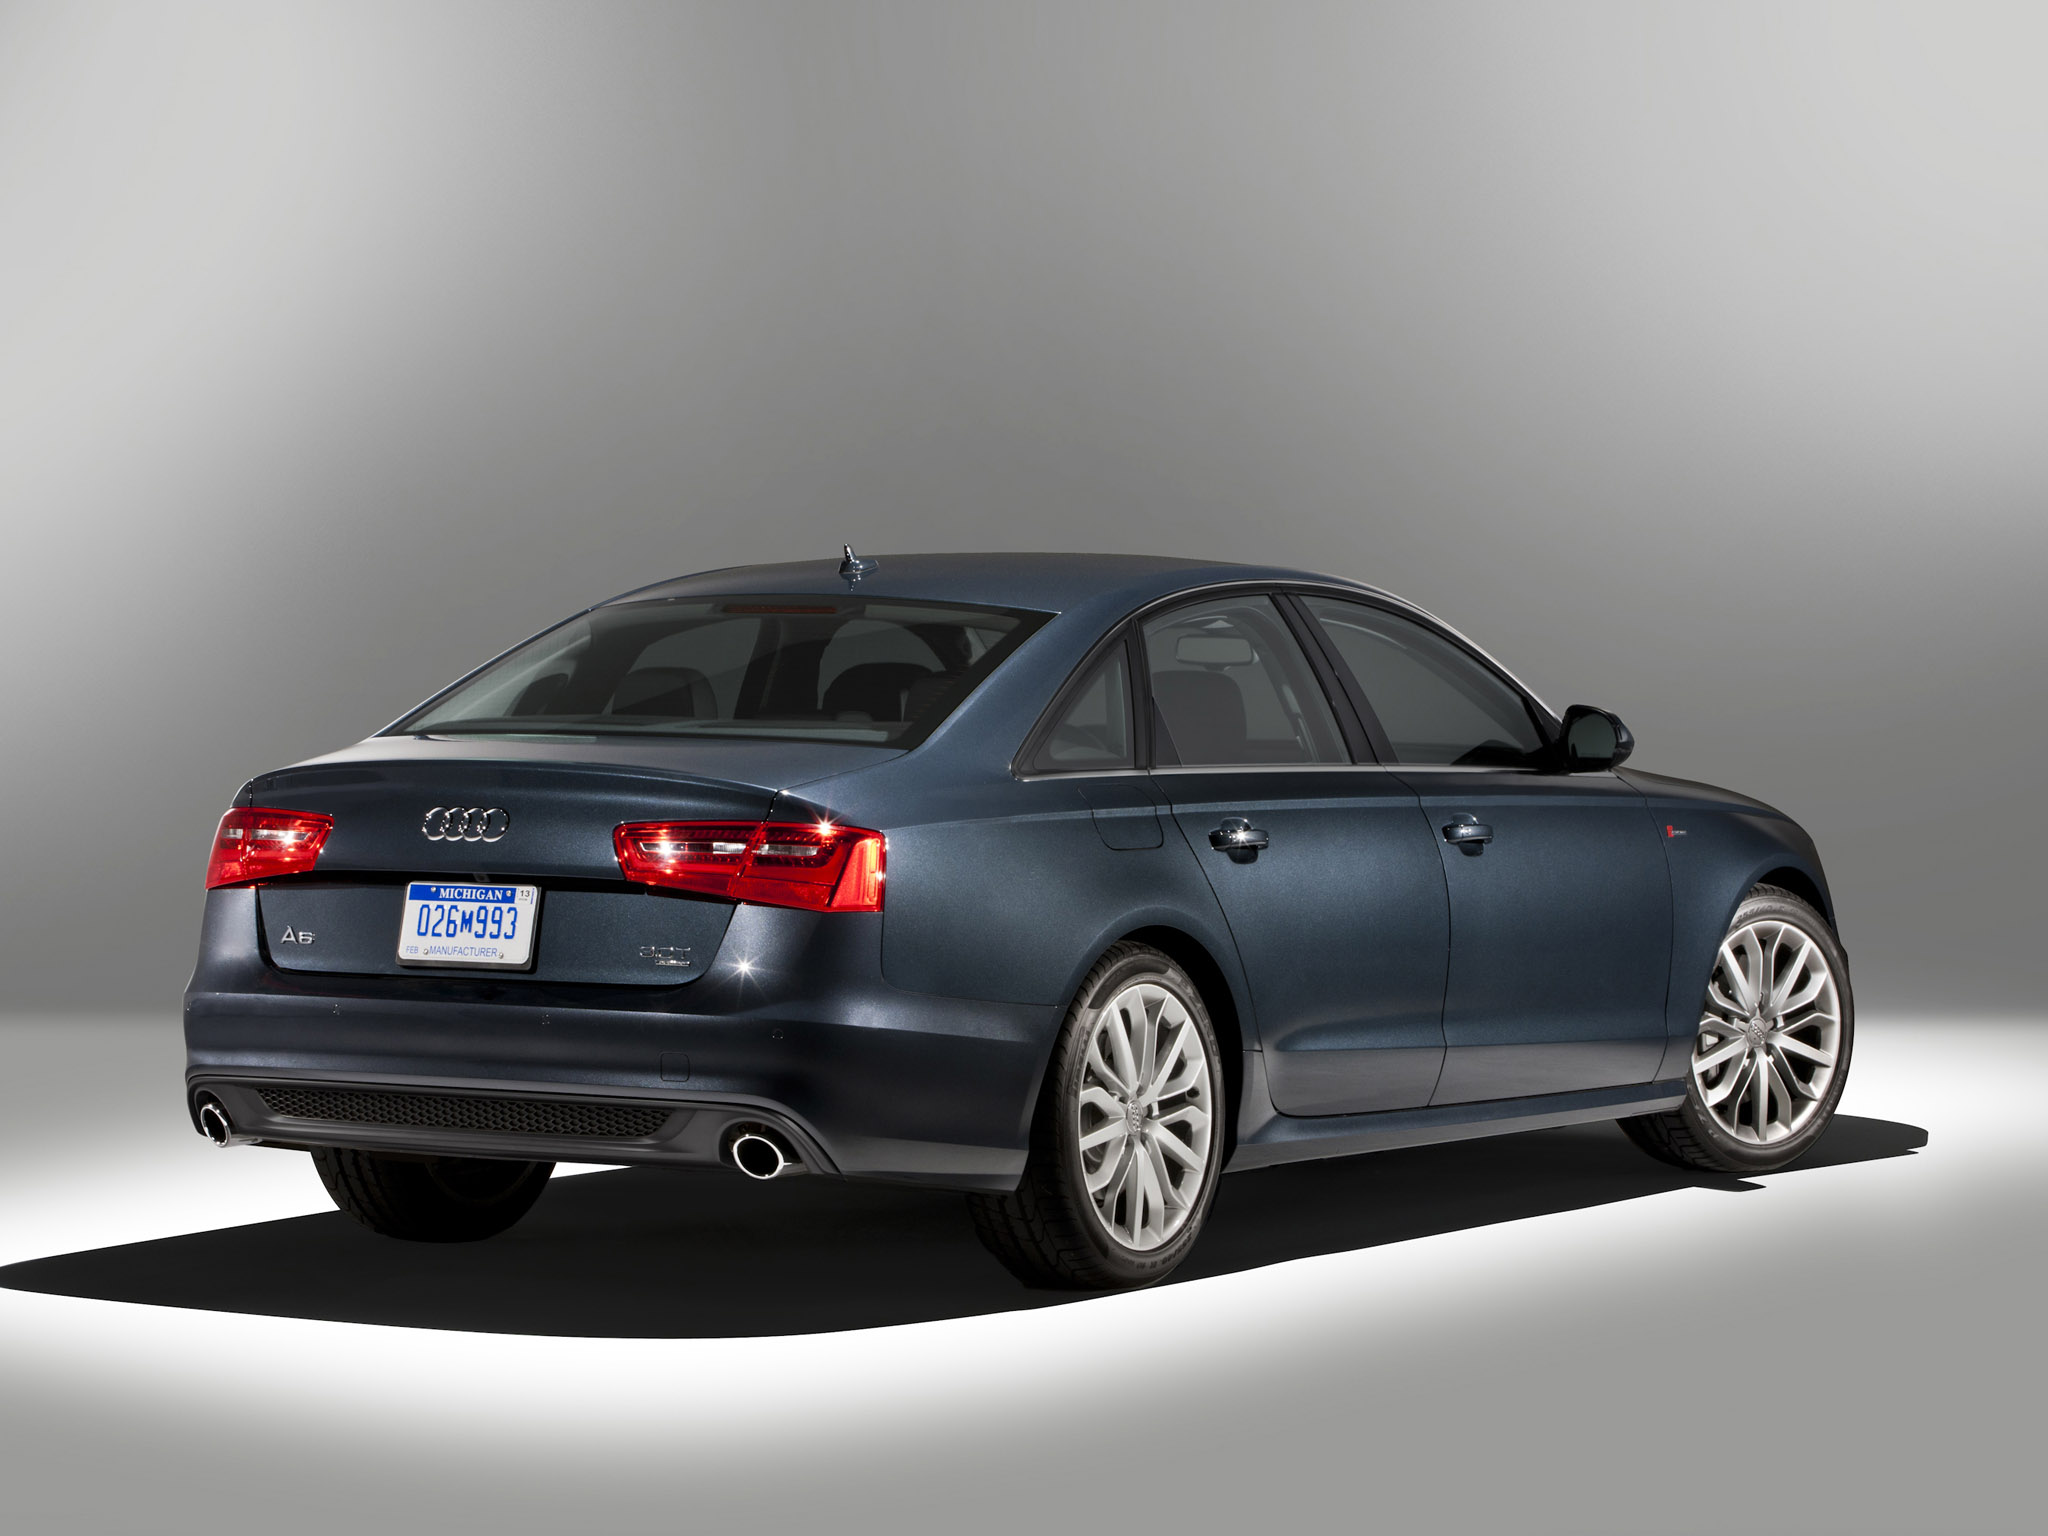 audi a6 3 0t s line sedan usa 2011 audi a6 3 0t s line sedan usa 2011 photo 12 car in pictures. Black Bedroom Furniture Sets. Home Design Ideas